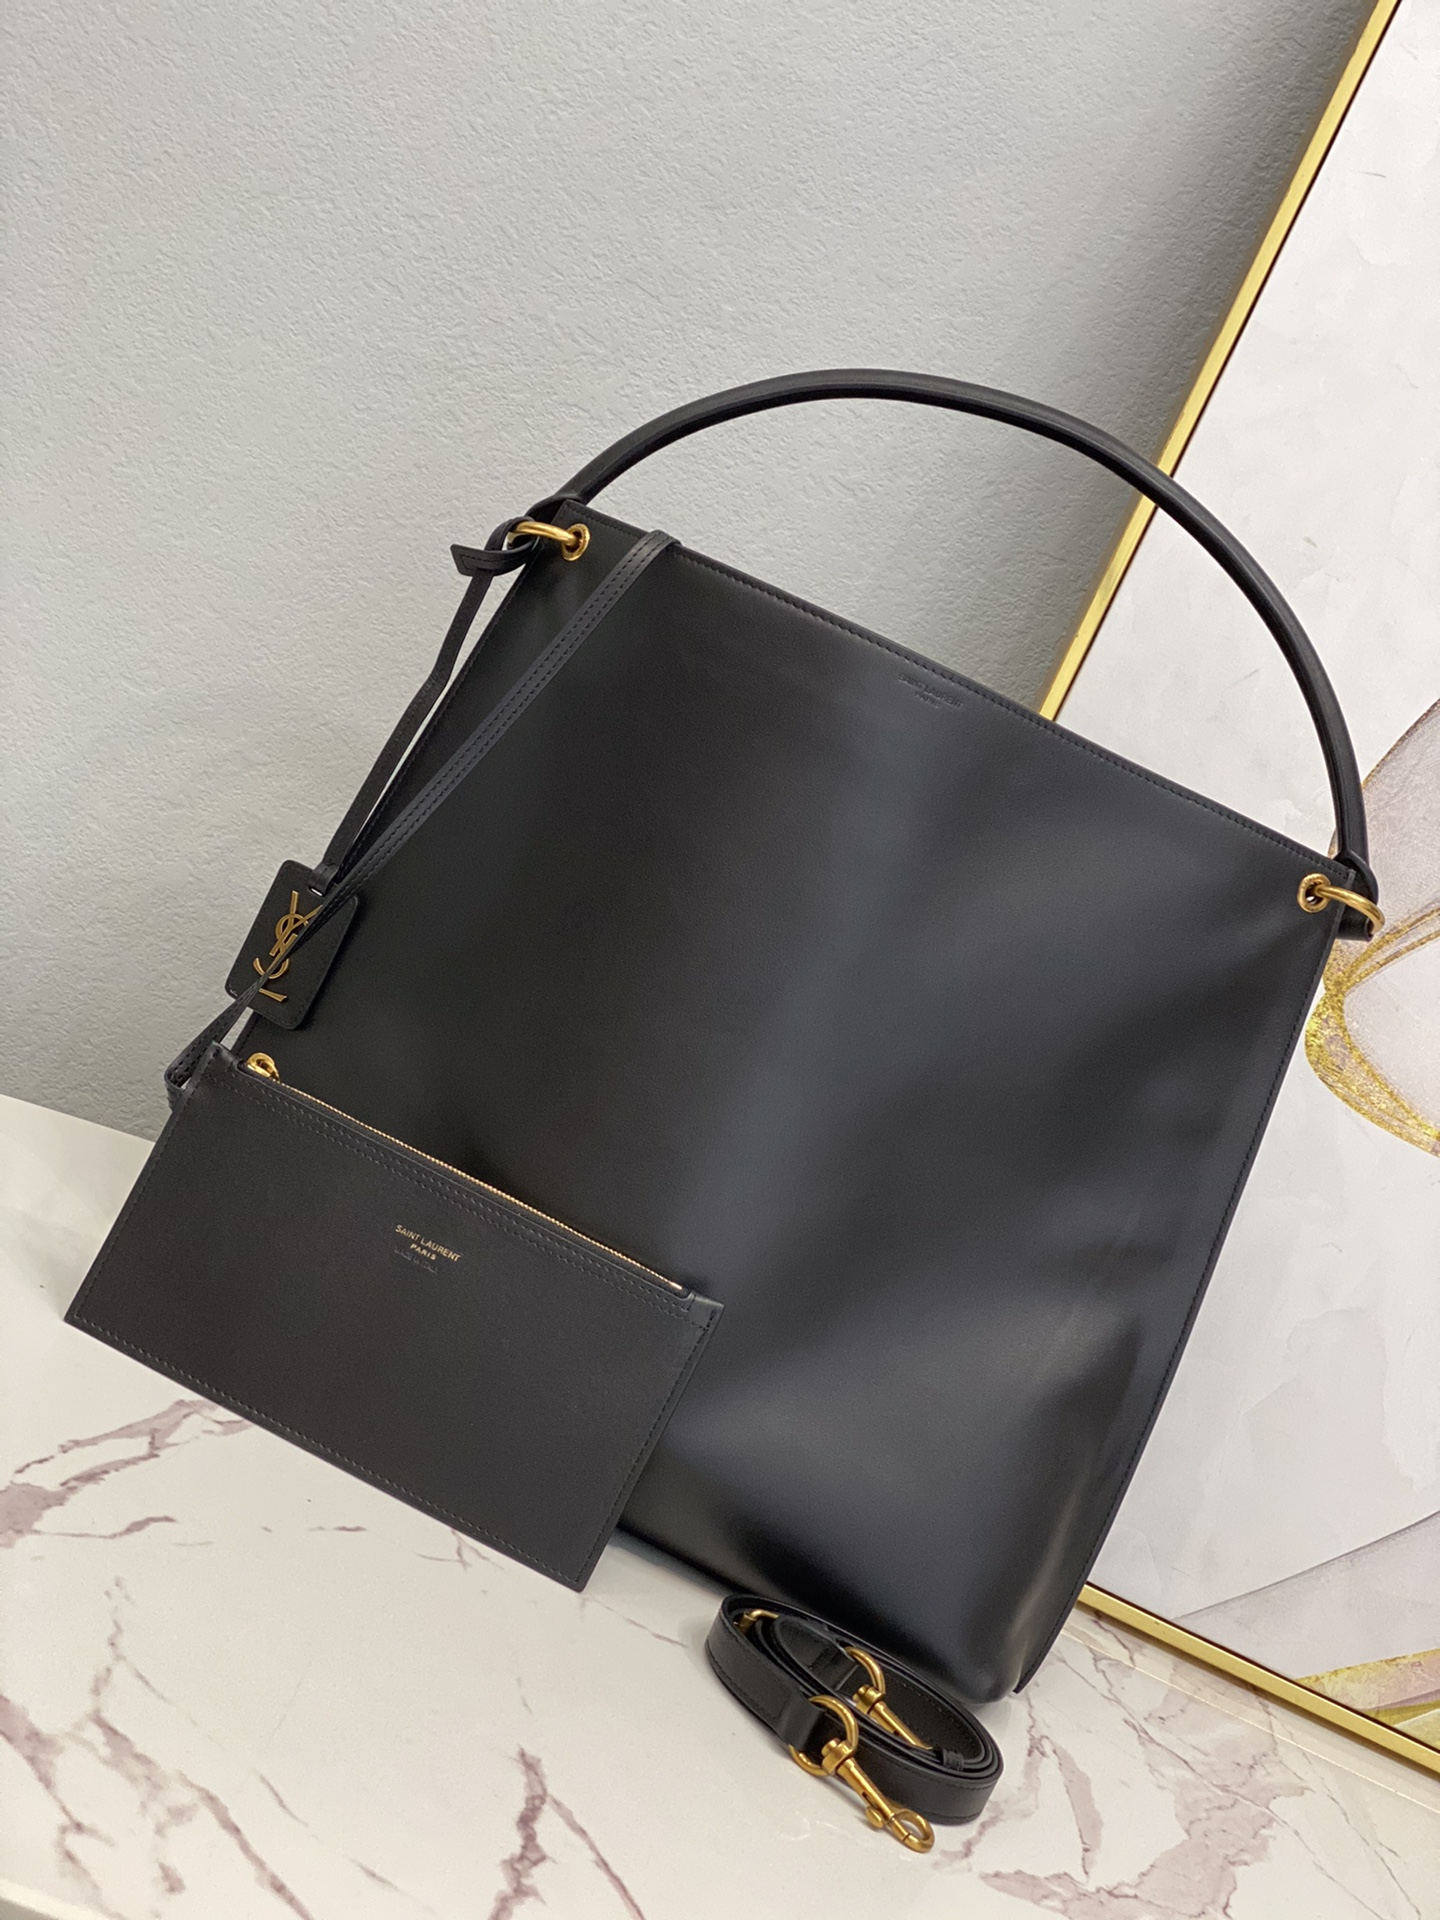 2020 cheap Saint Laurent tag hobo bag in smooth saddle leather Black